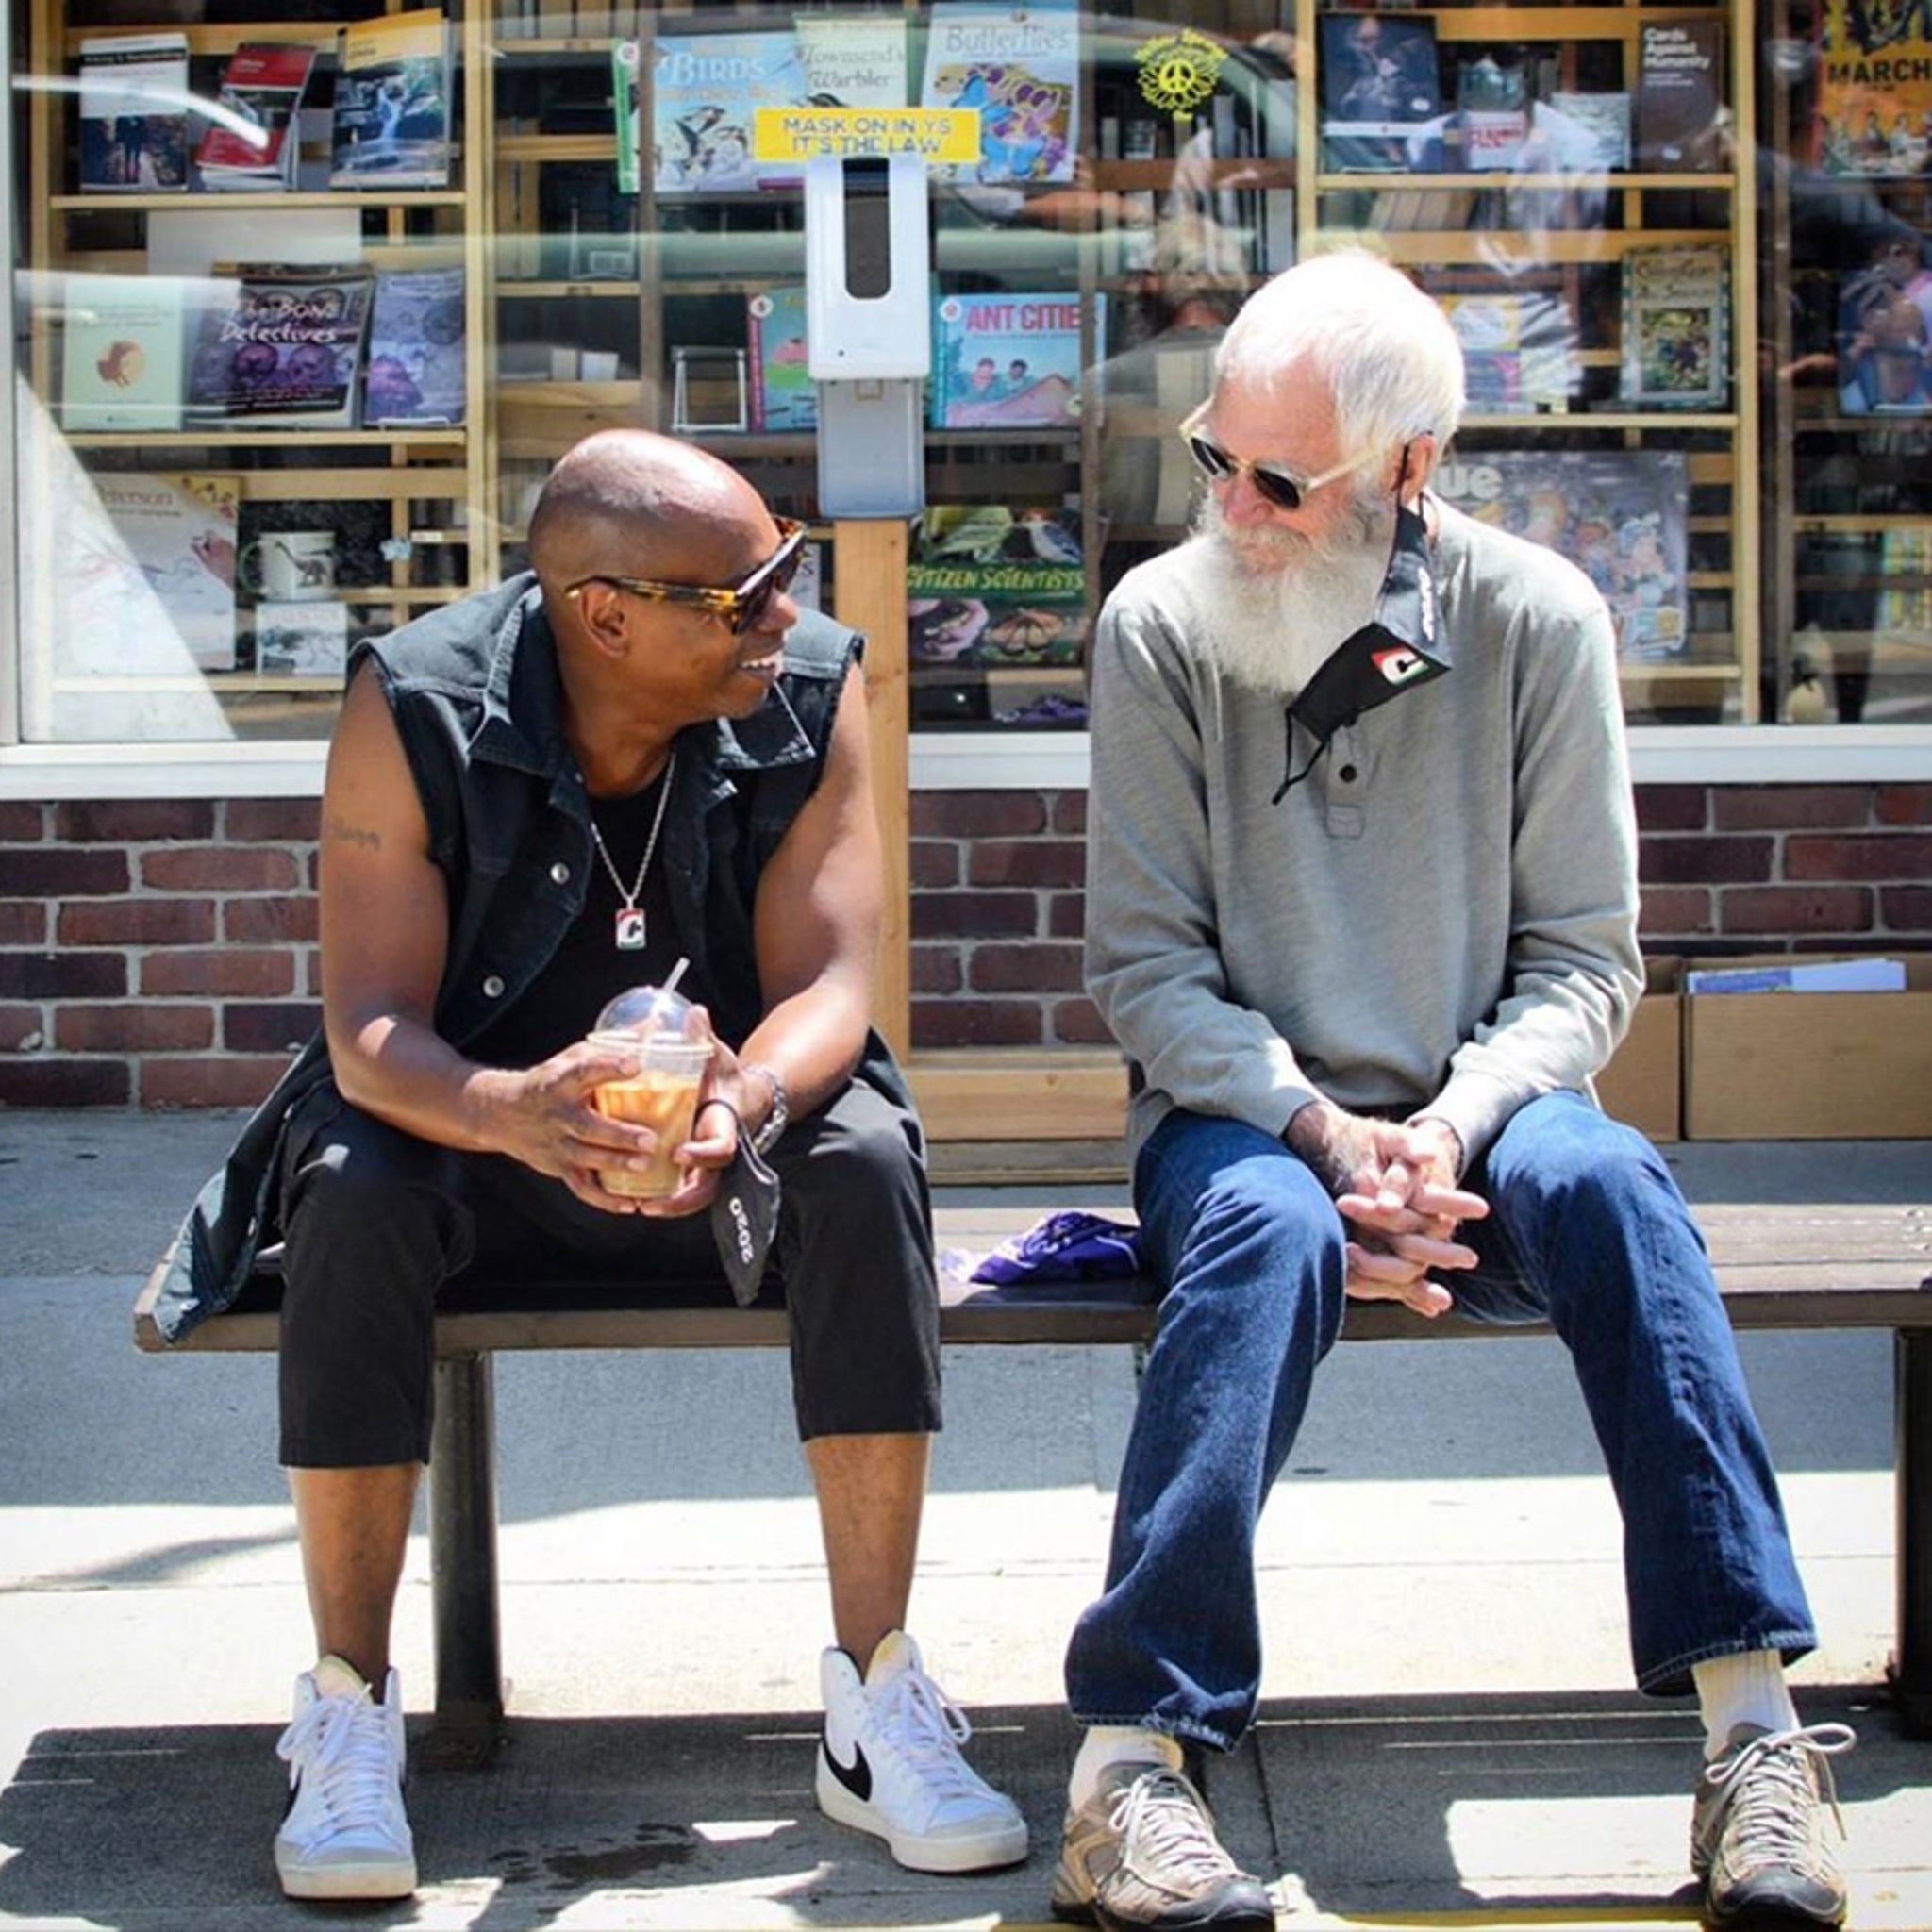 dave chappelle hanging with david letterman in his ohio hometown dave chappelle hanging with david